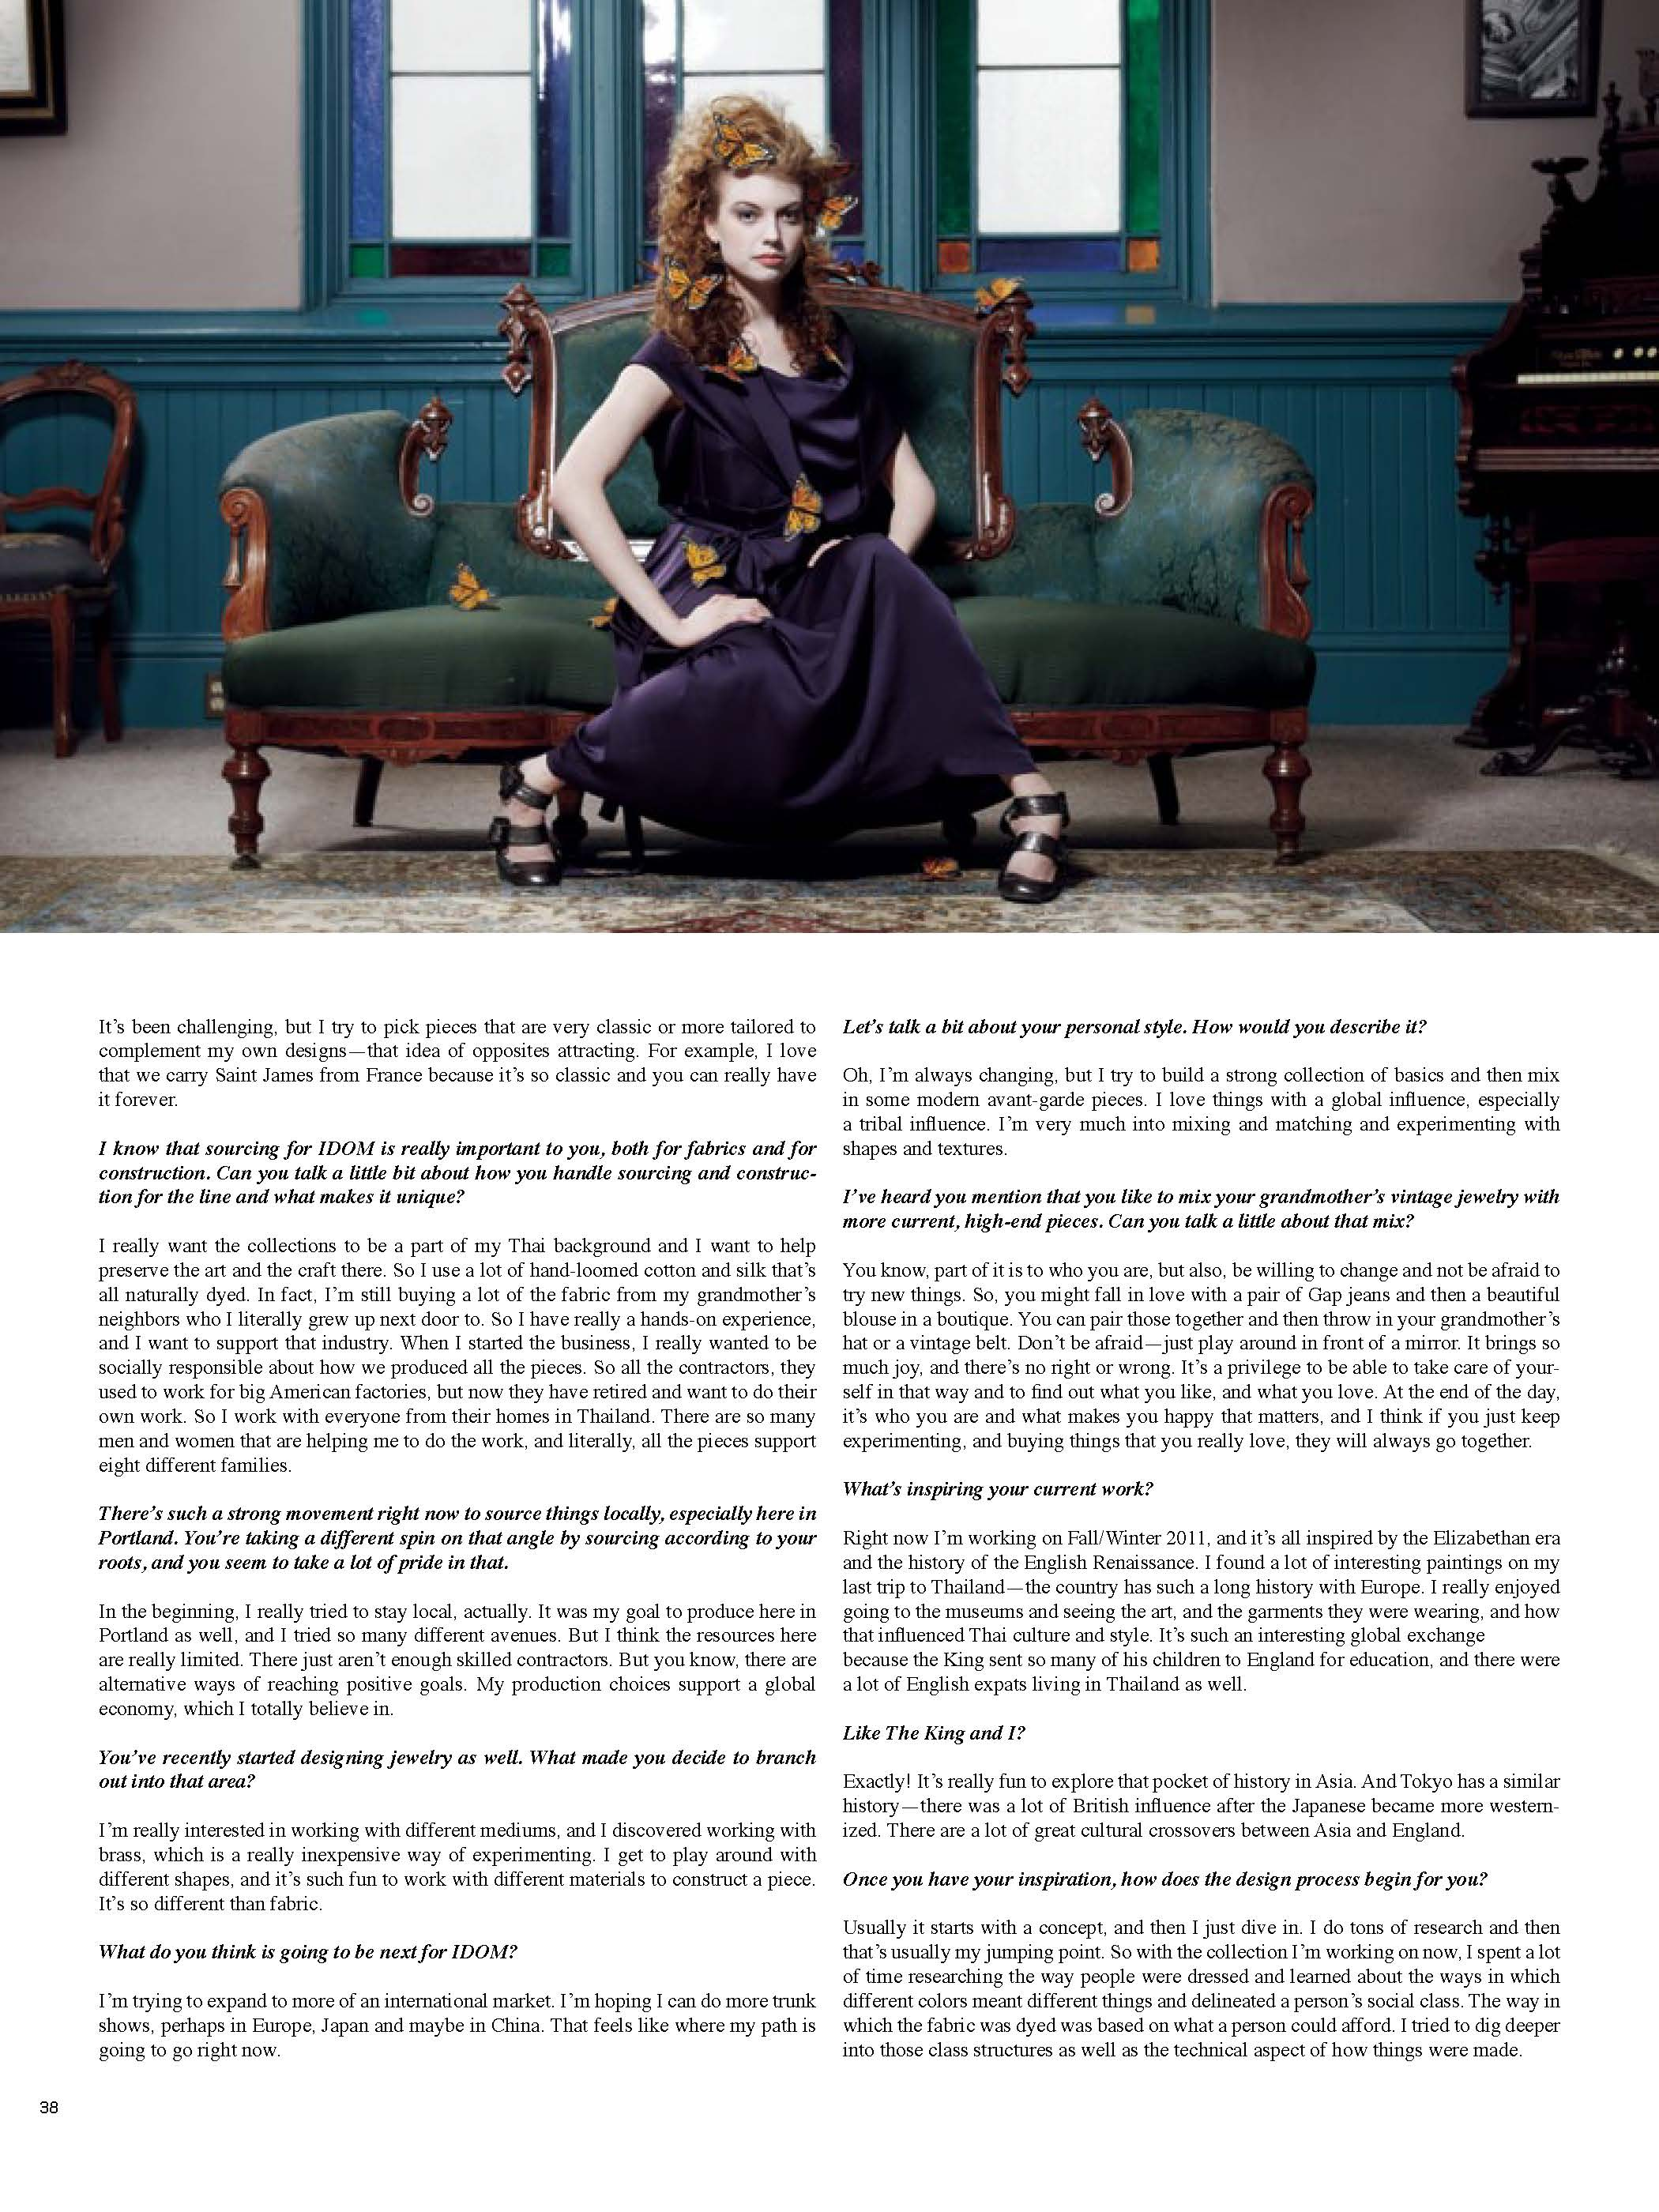 AboutFaceMag-Modi-Summer 11_Page_5.jpg